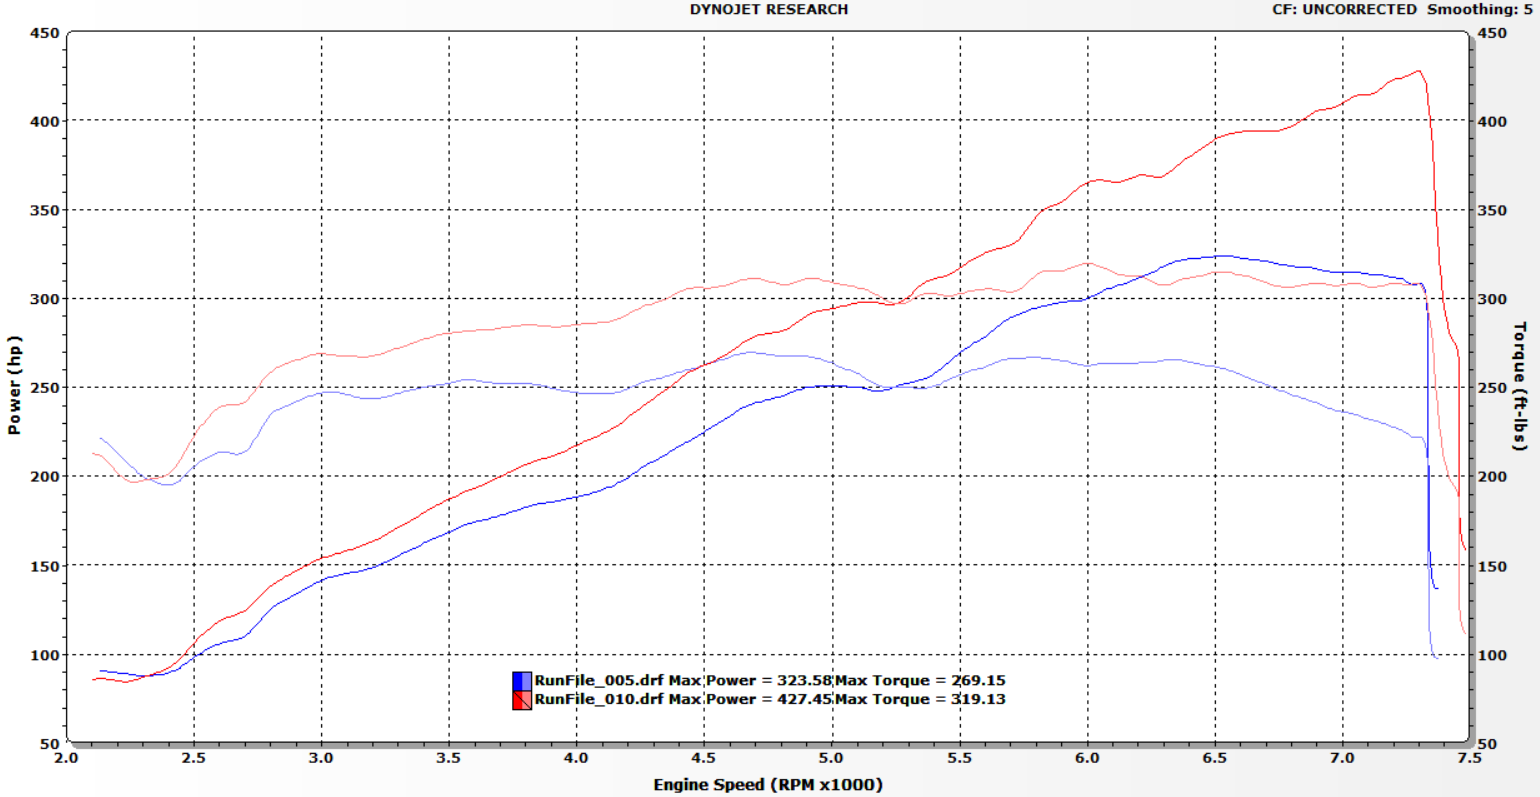 vf engineering porsche 997 997.1 supercharger dyno plot